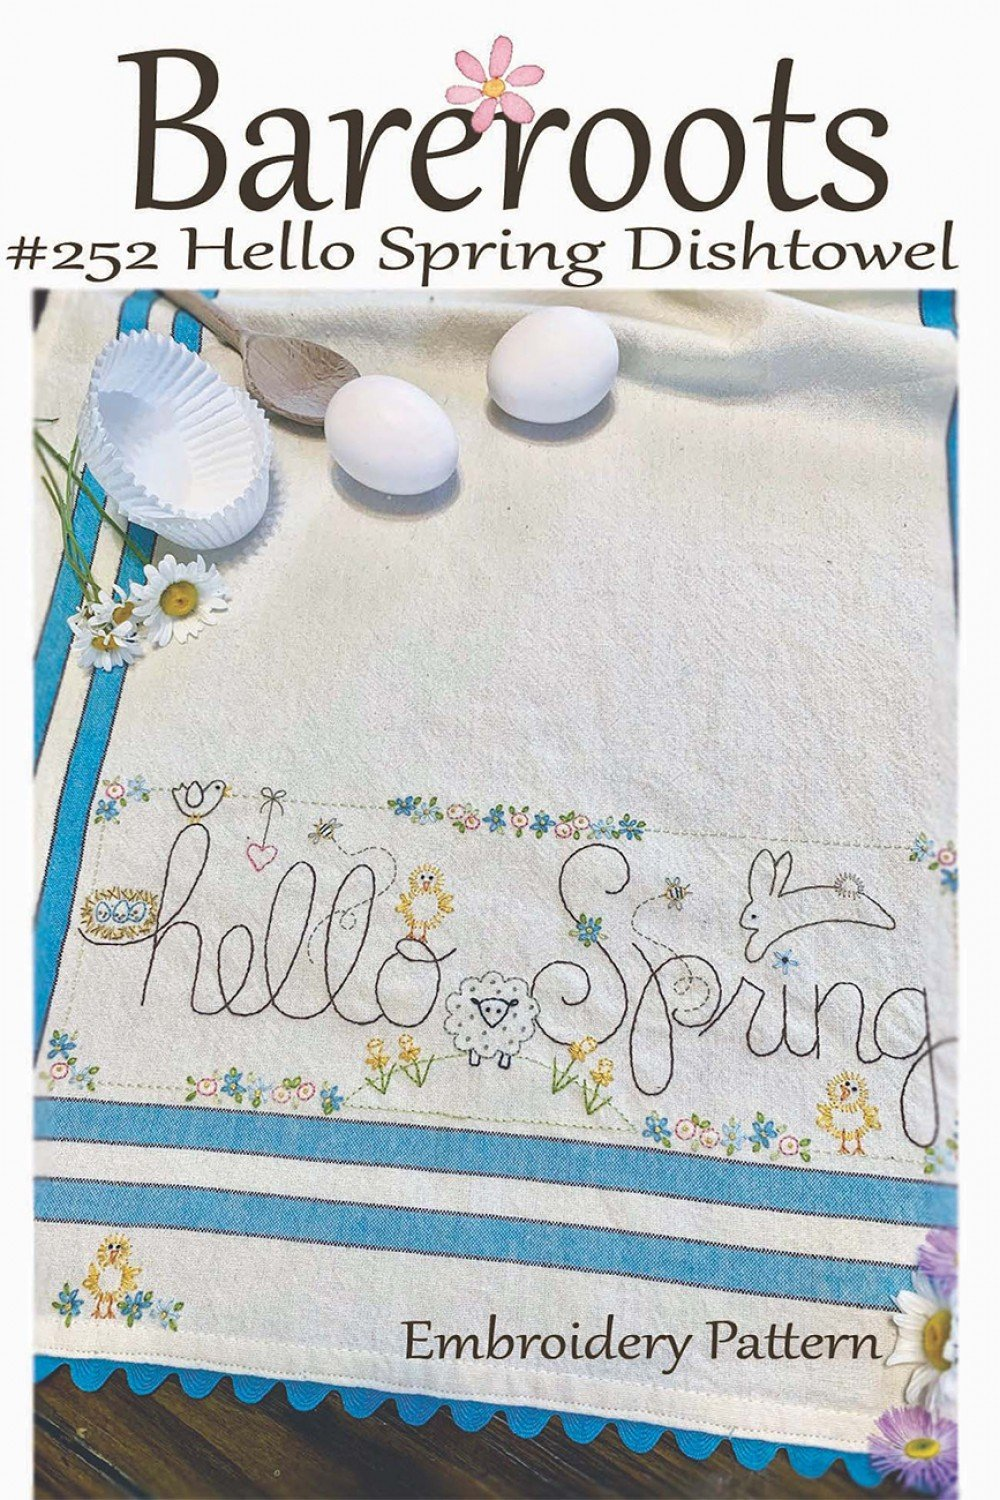 Bareroots - Dishtowel Pattern and Floss Kit - 03 March - Hello Spring - BR252K